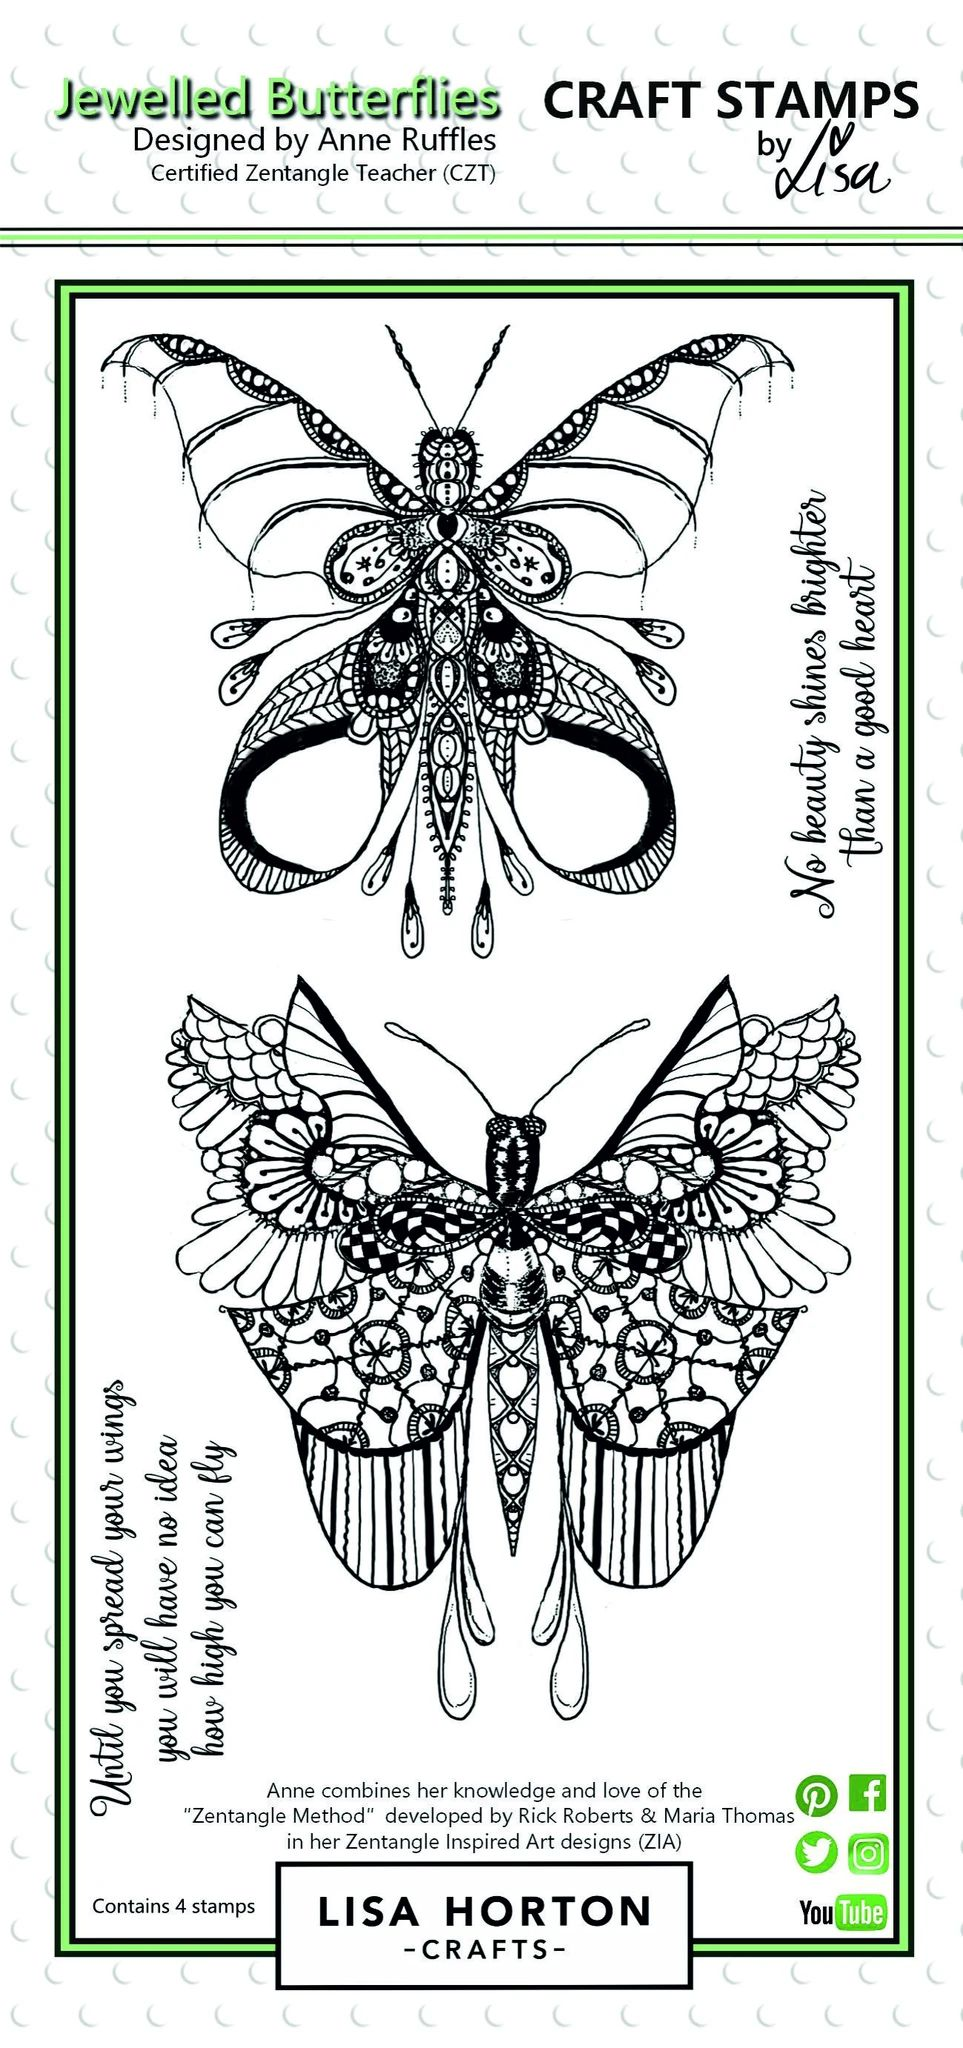 Lisa Horton Crafts Stamp - Jewelled Butterflies